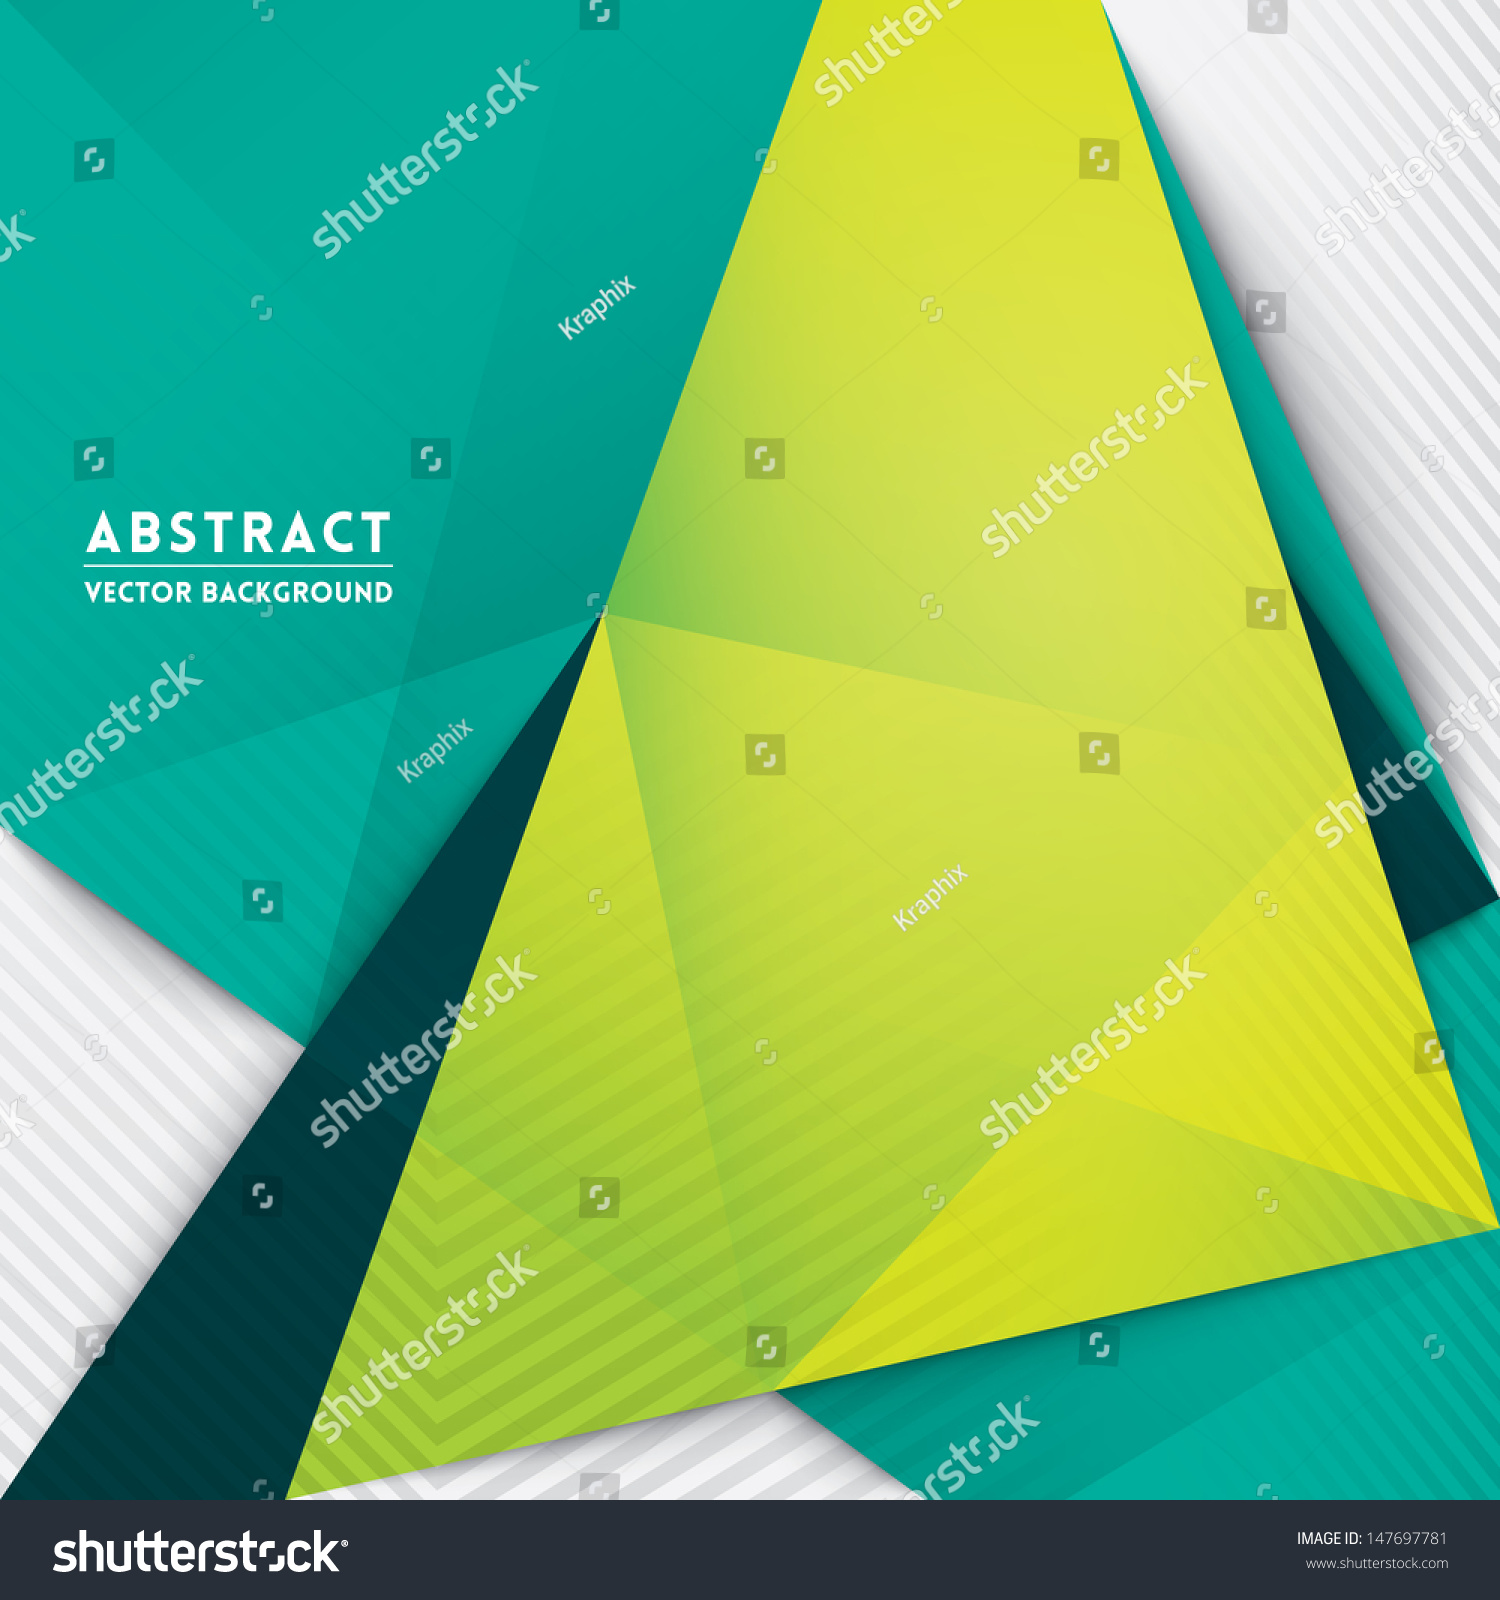 Creative Backgrounds Book Cover Pictures : Abstract triangle shape background web design stock vector